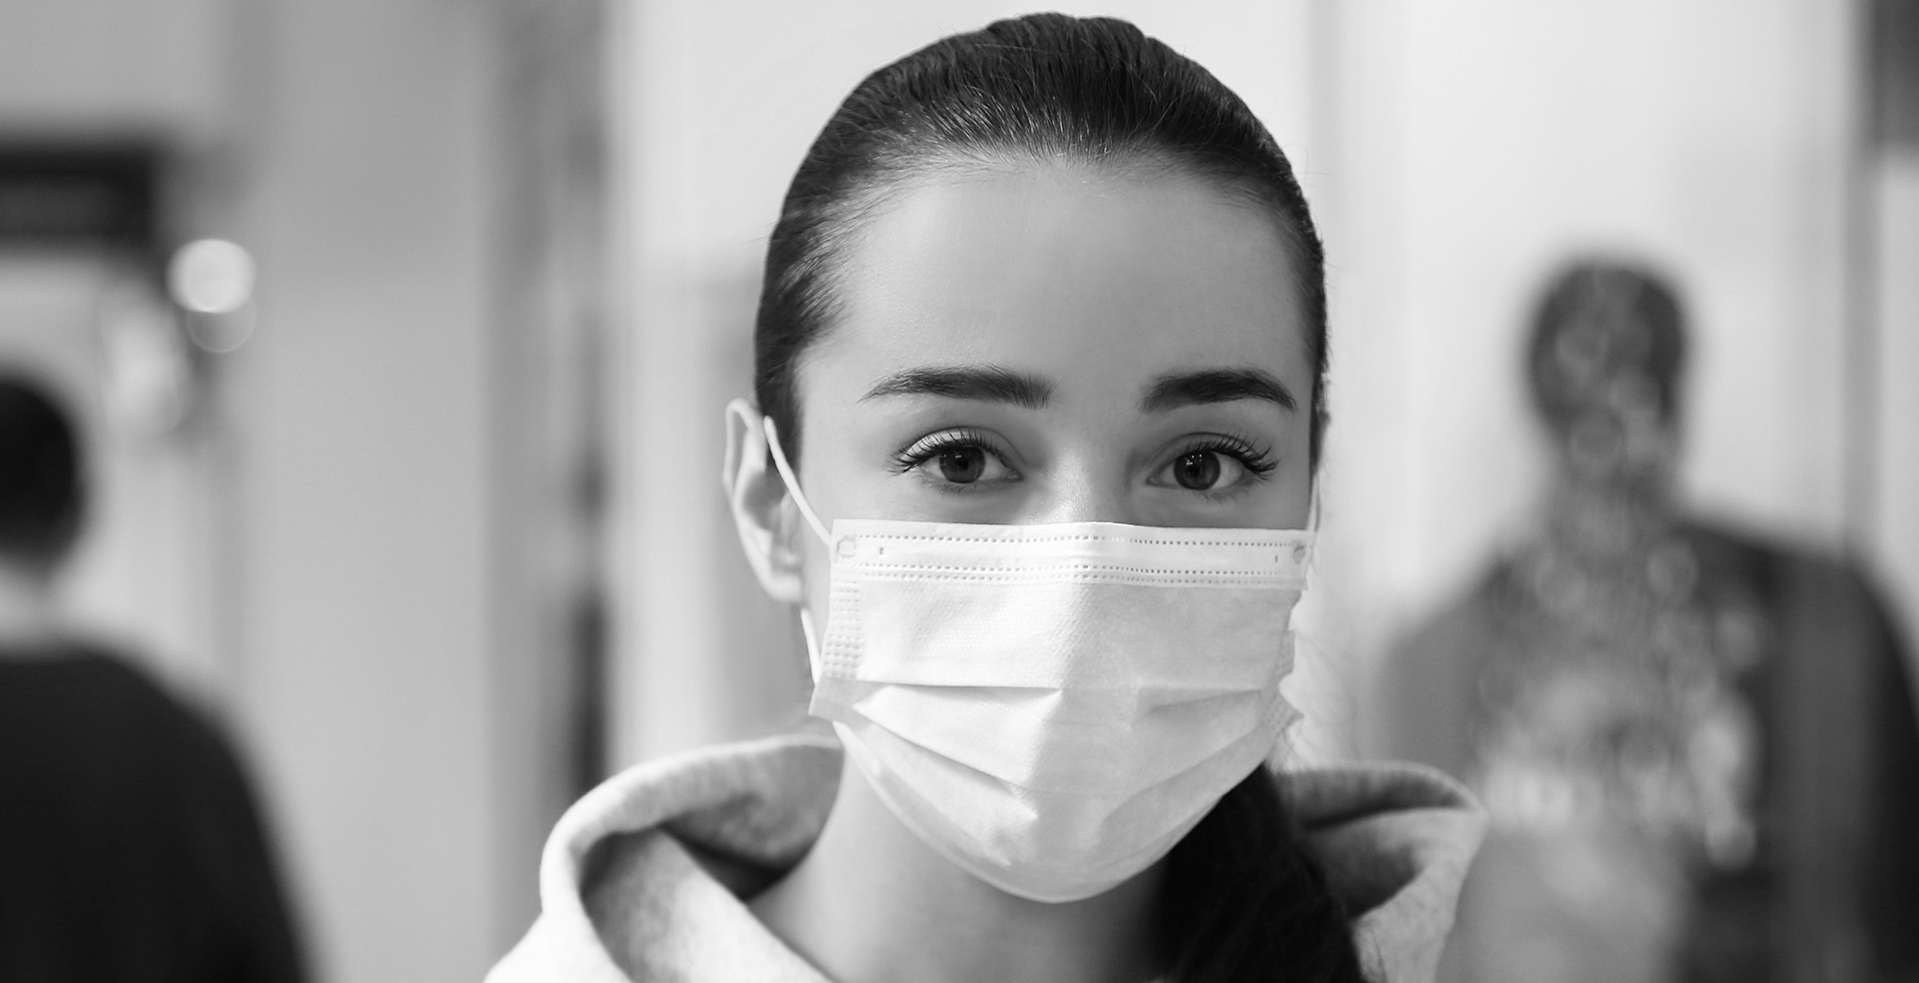 A women wearing a face mask looks into the camera